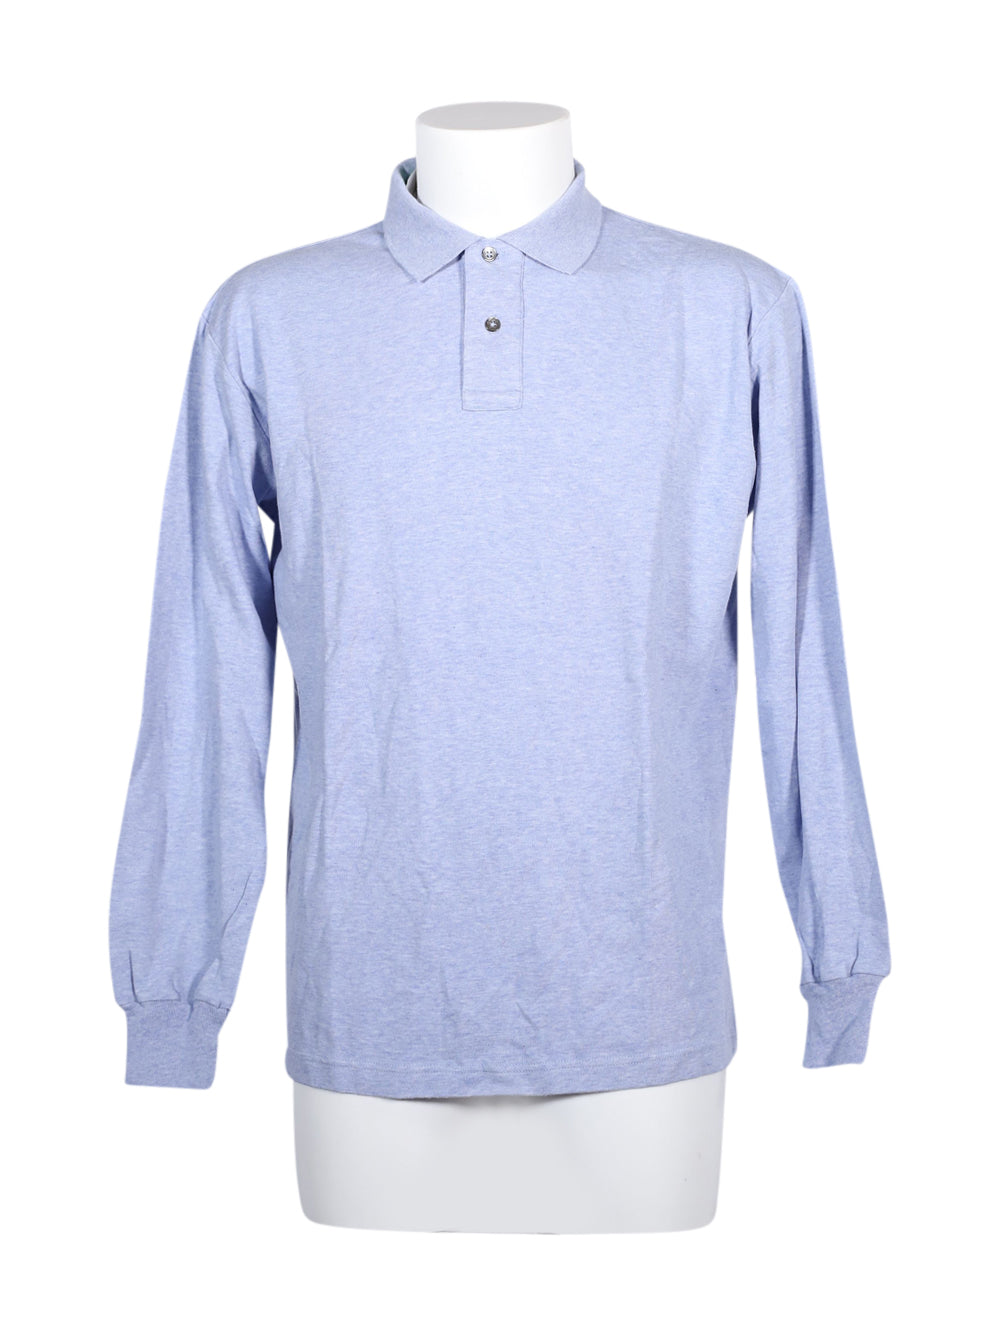 Front photo of Preloved ALBERTO ASPESI Light-blue Man's polo - size 40/L